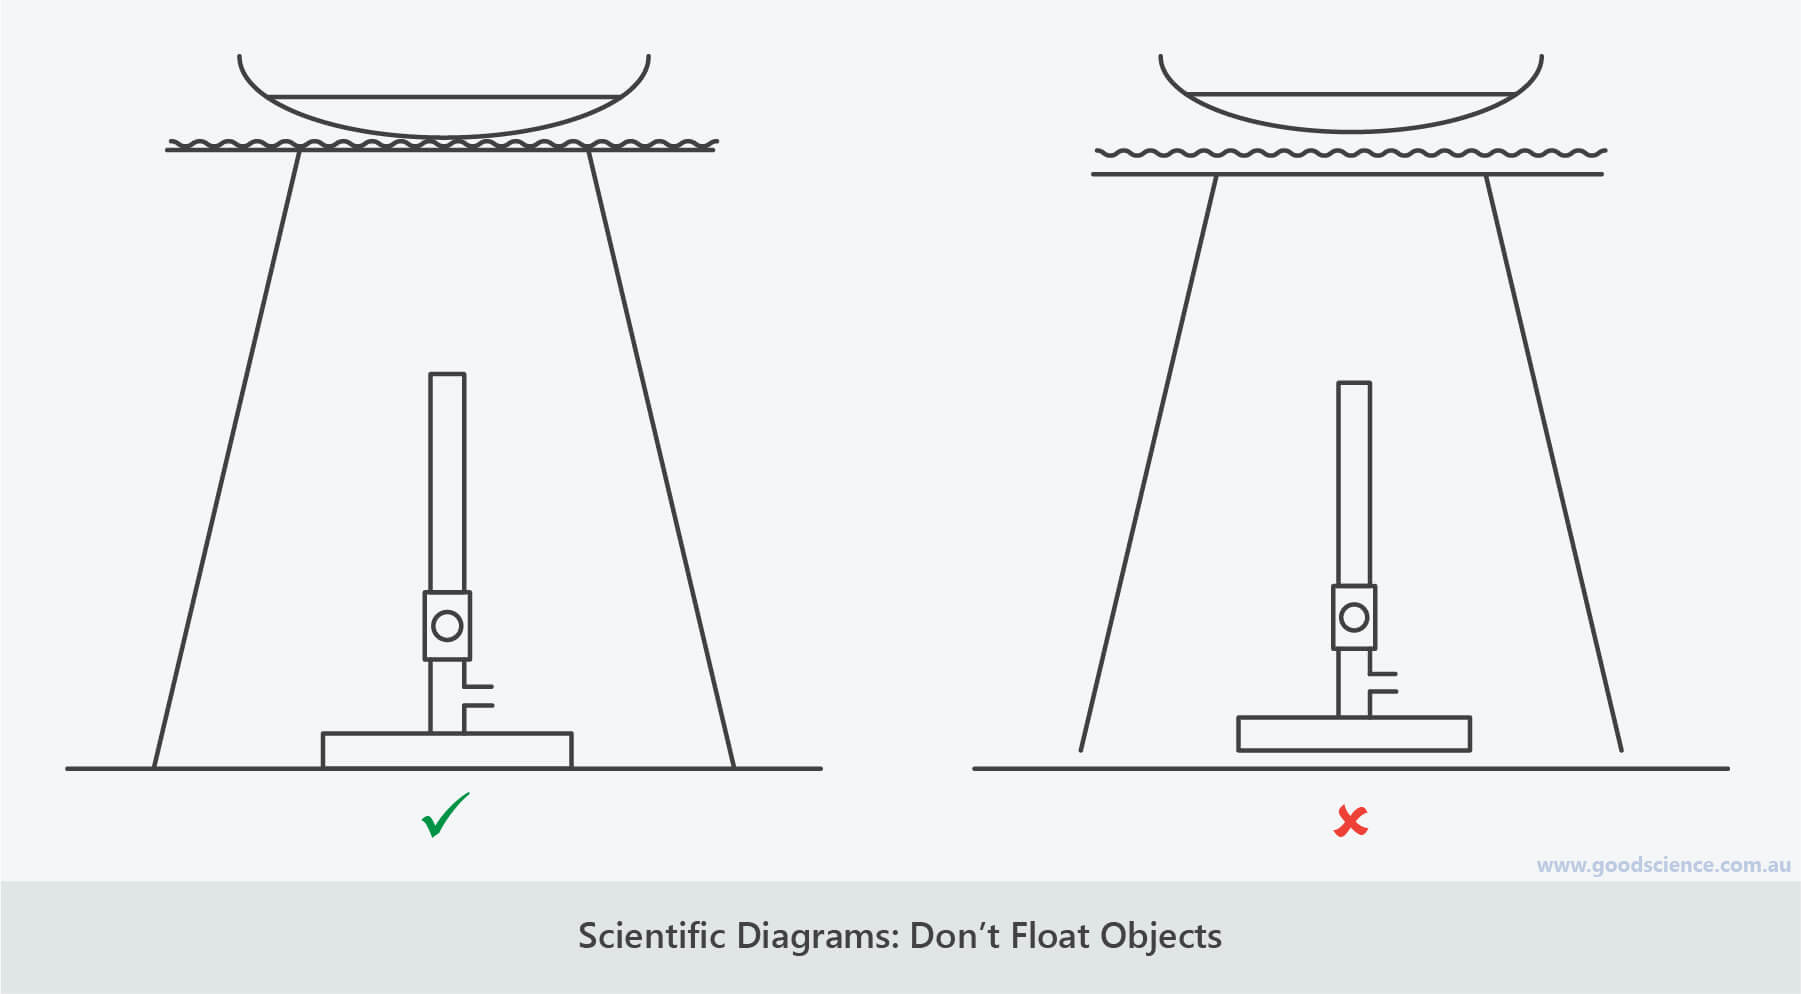 scientific diagrams don't float objects